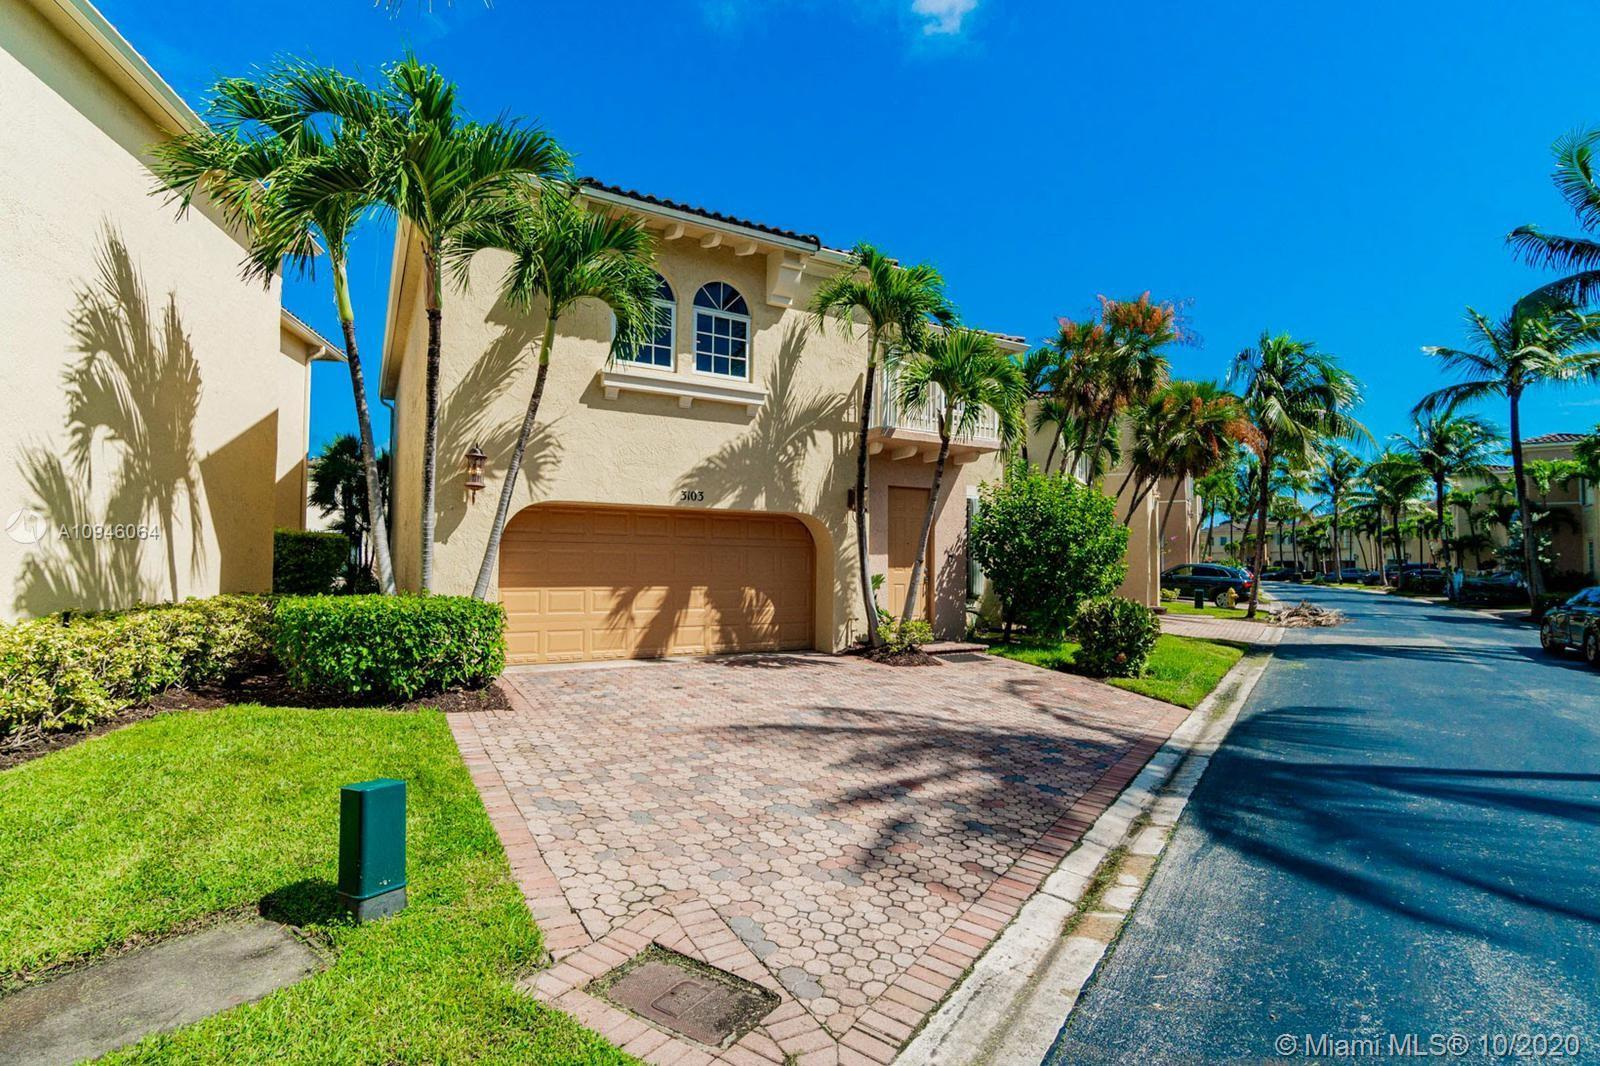 PRESTIGIOUS AVENTURA LAKES GATED COMMUNITY, BEAUTIFUL 3 BEDROOMS AND 2.5 BATHS HOME OVERLOOKING THE